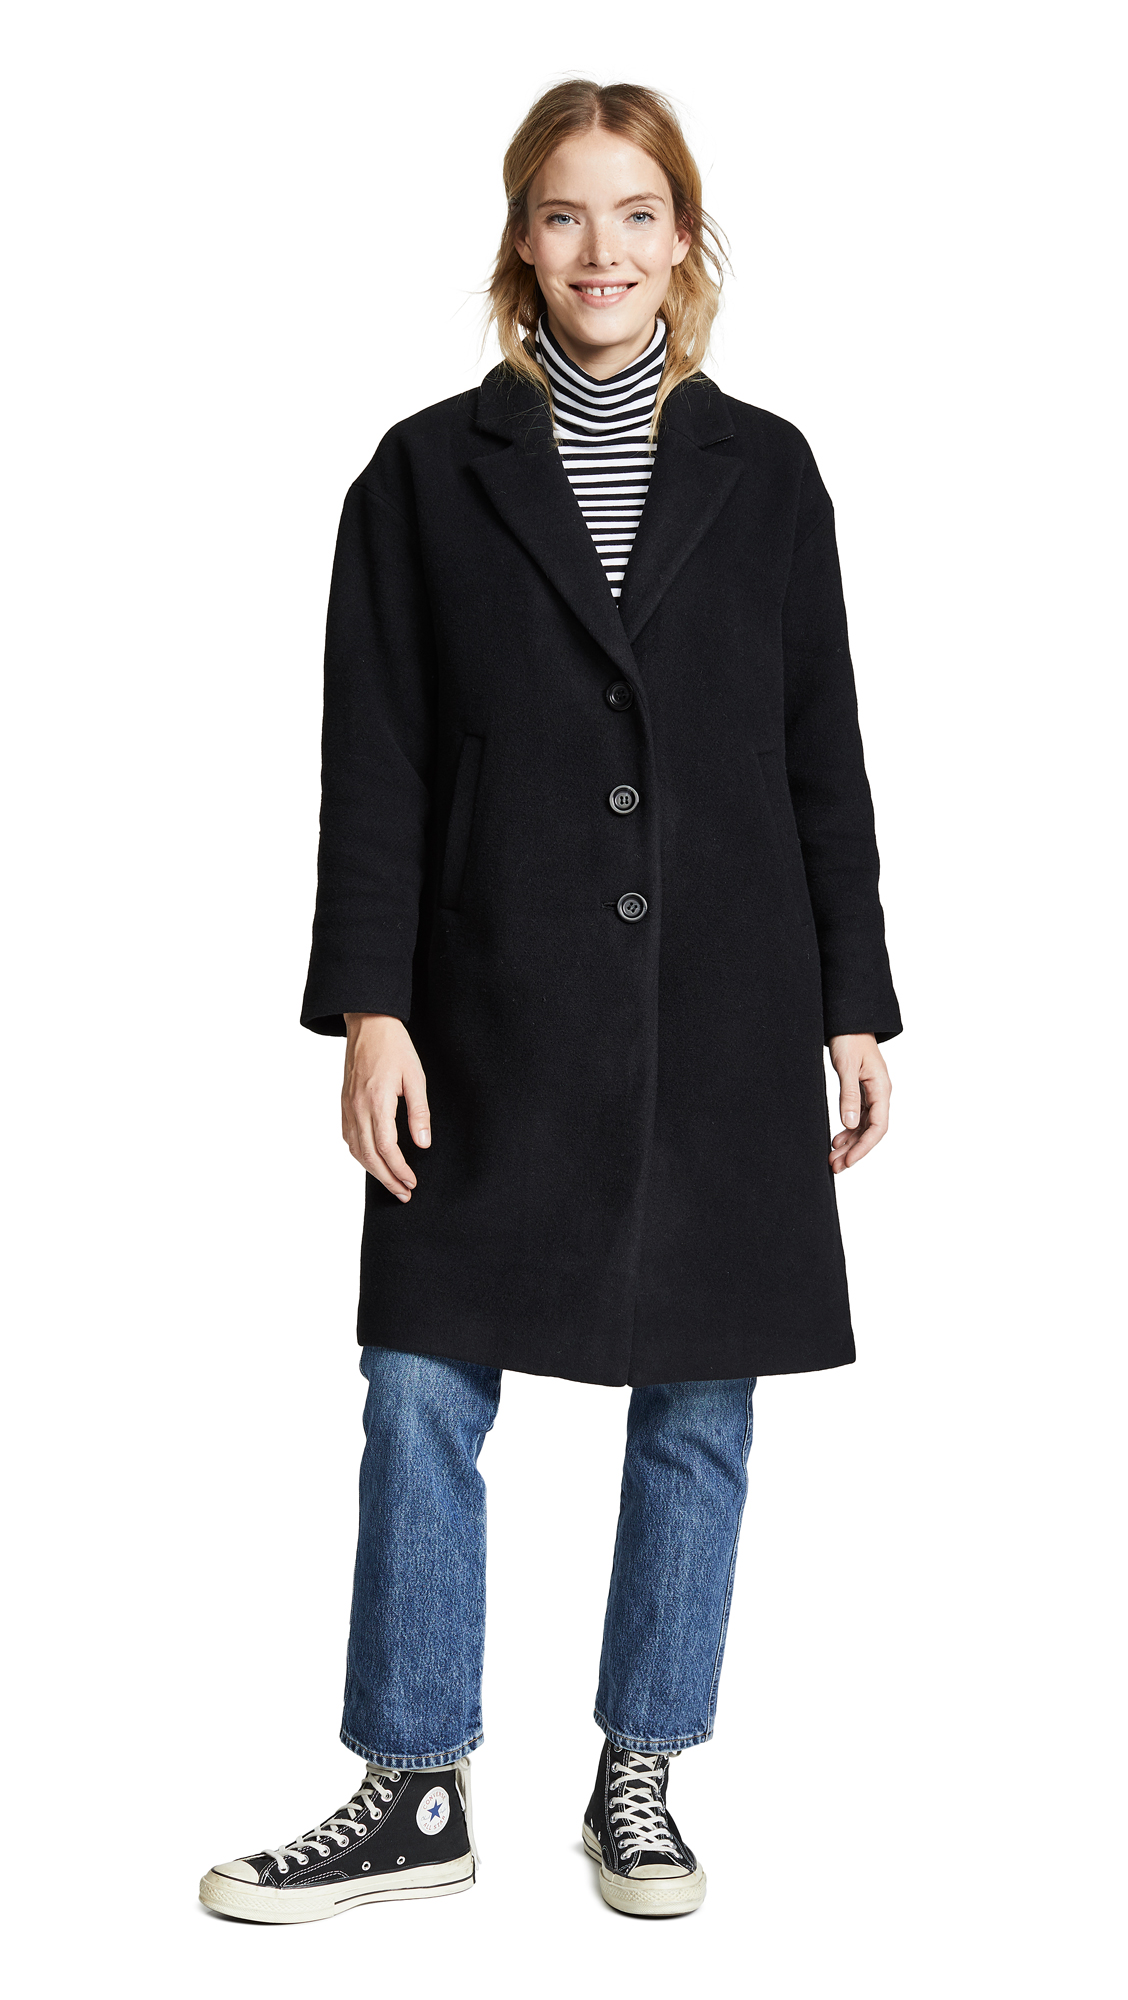 Madewell Long Cocoon Coat - True Black